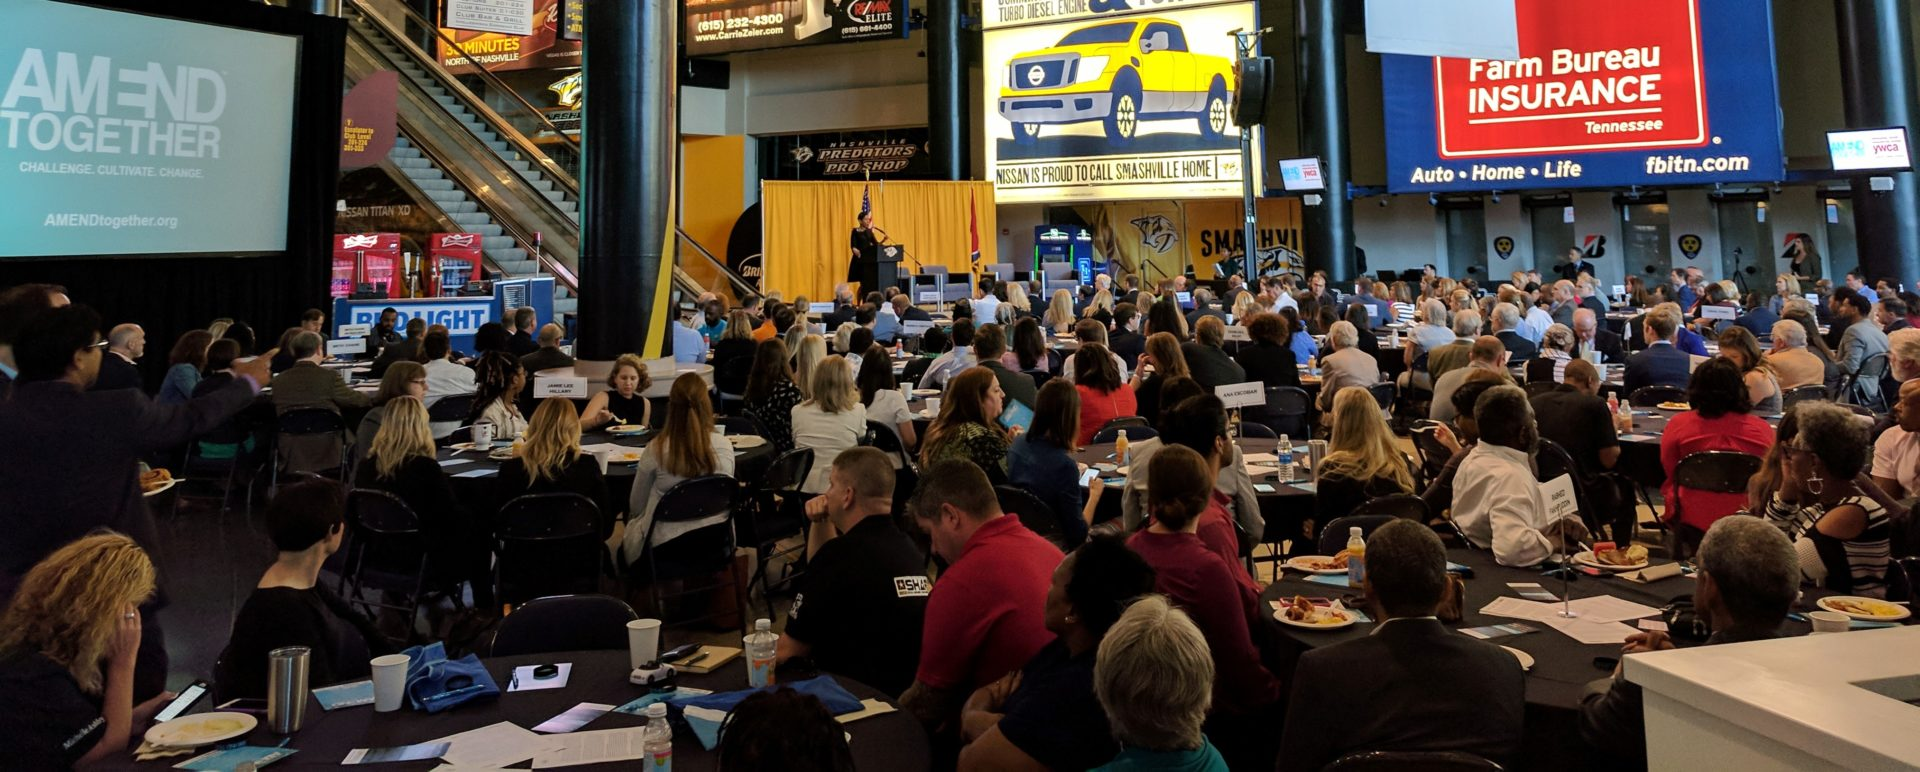 Crowd at the 2017 AMEND Experience in Bridgestone Arena